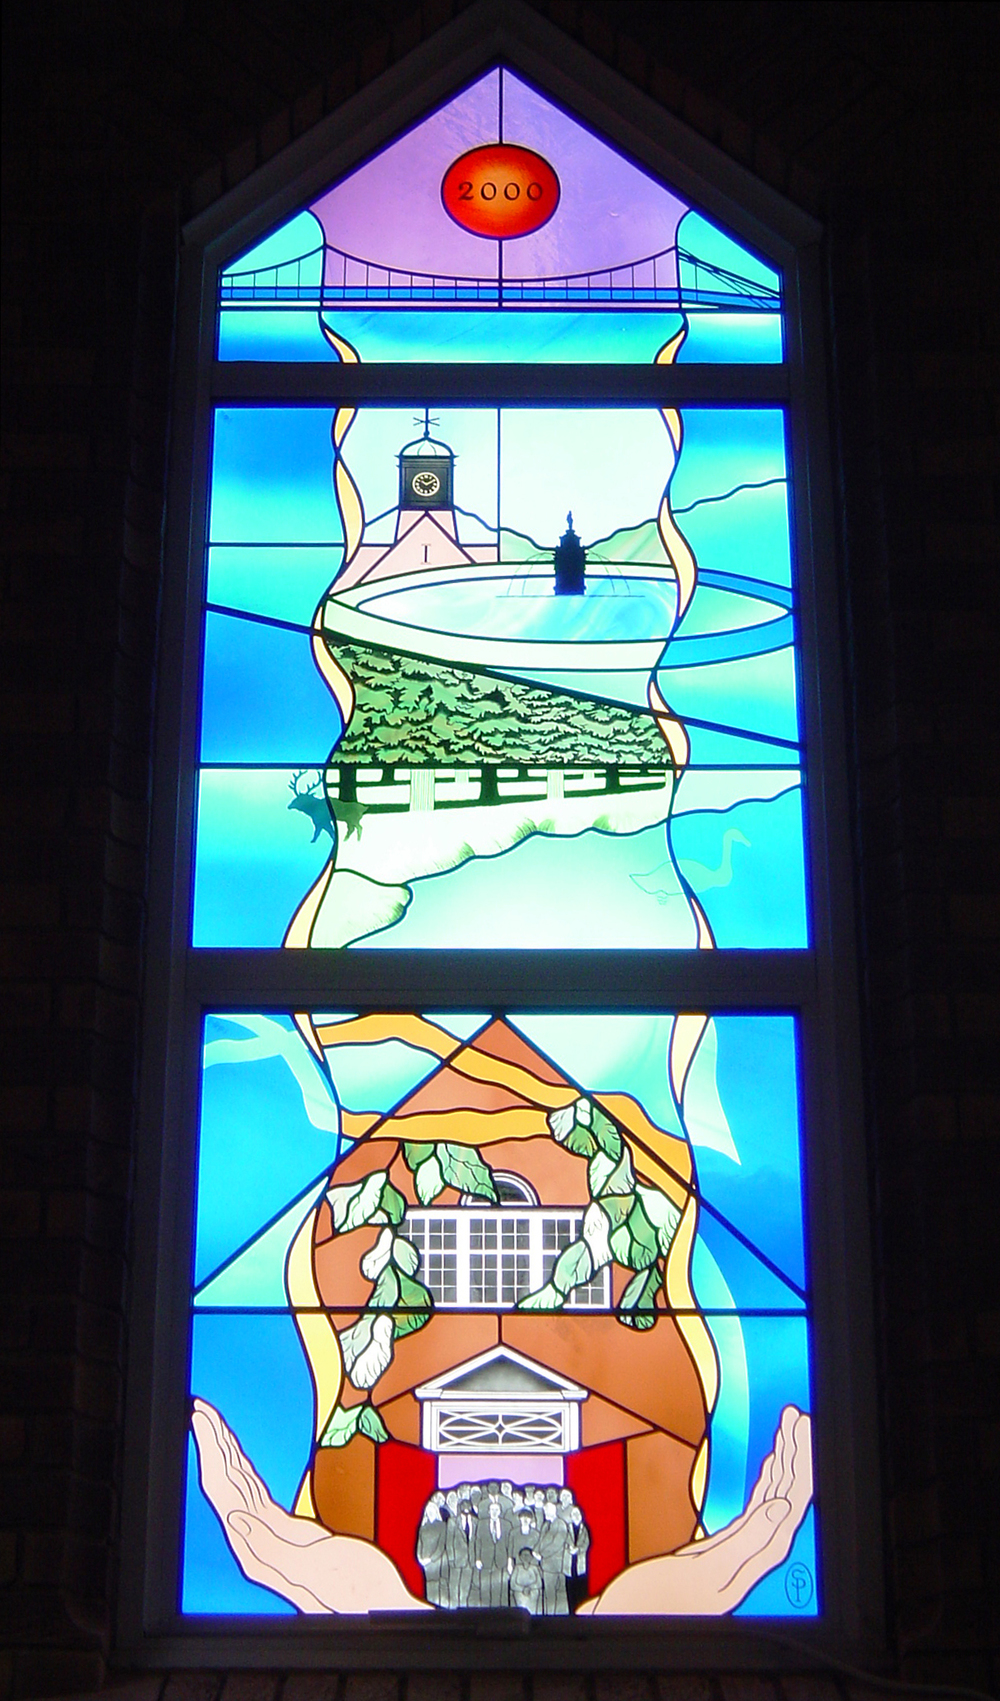 Millenium window in chapel, Teddington Memorial Hospital, Middlesex.